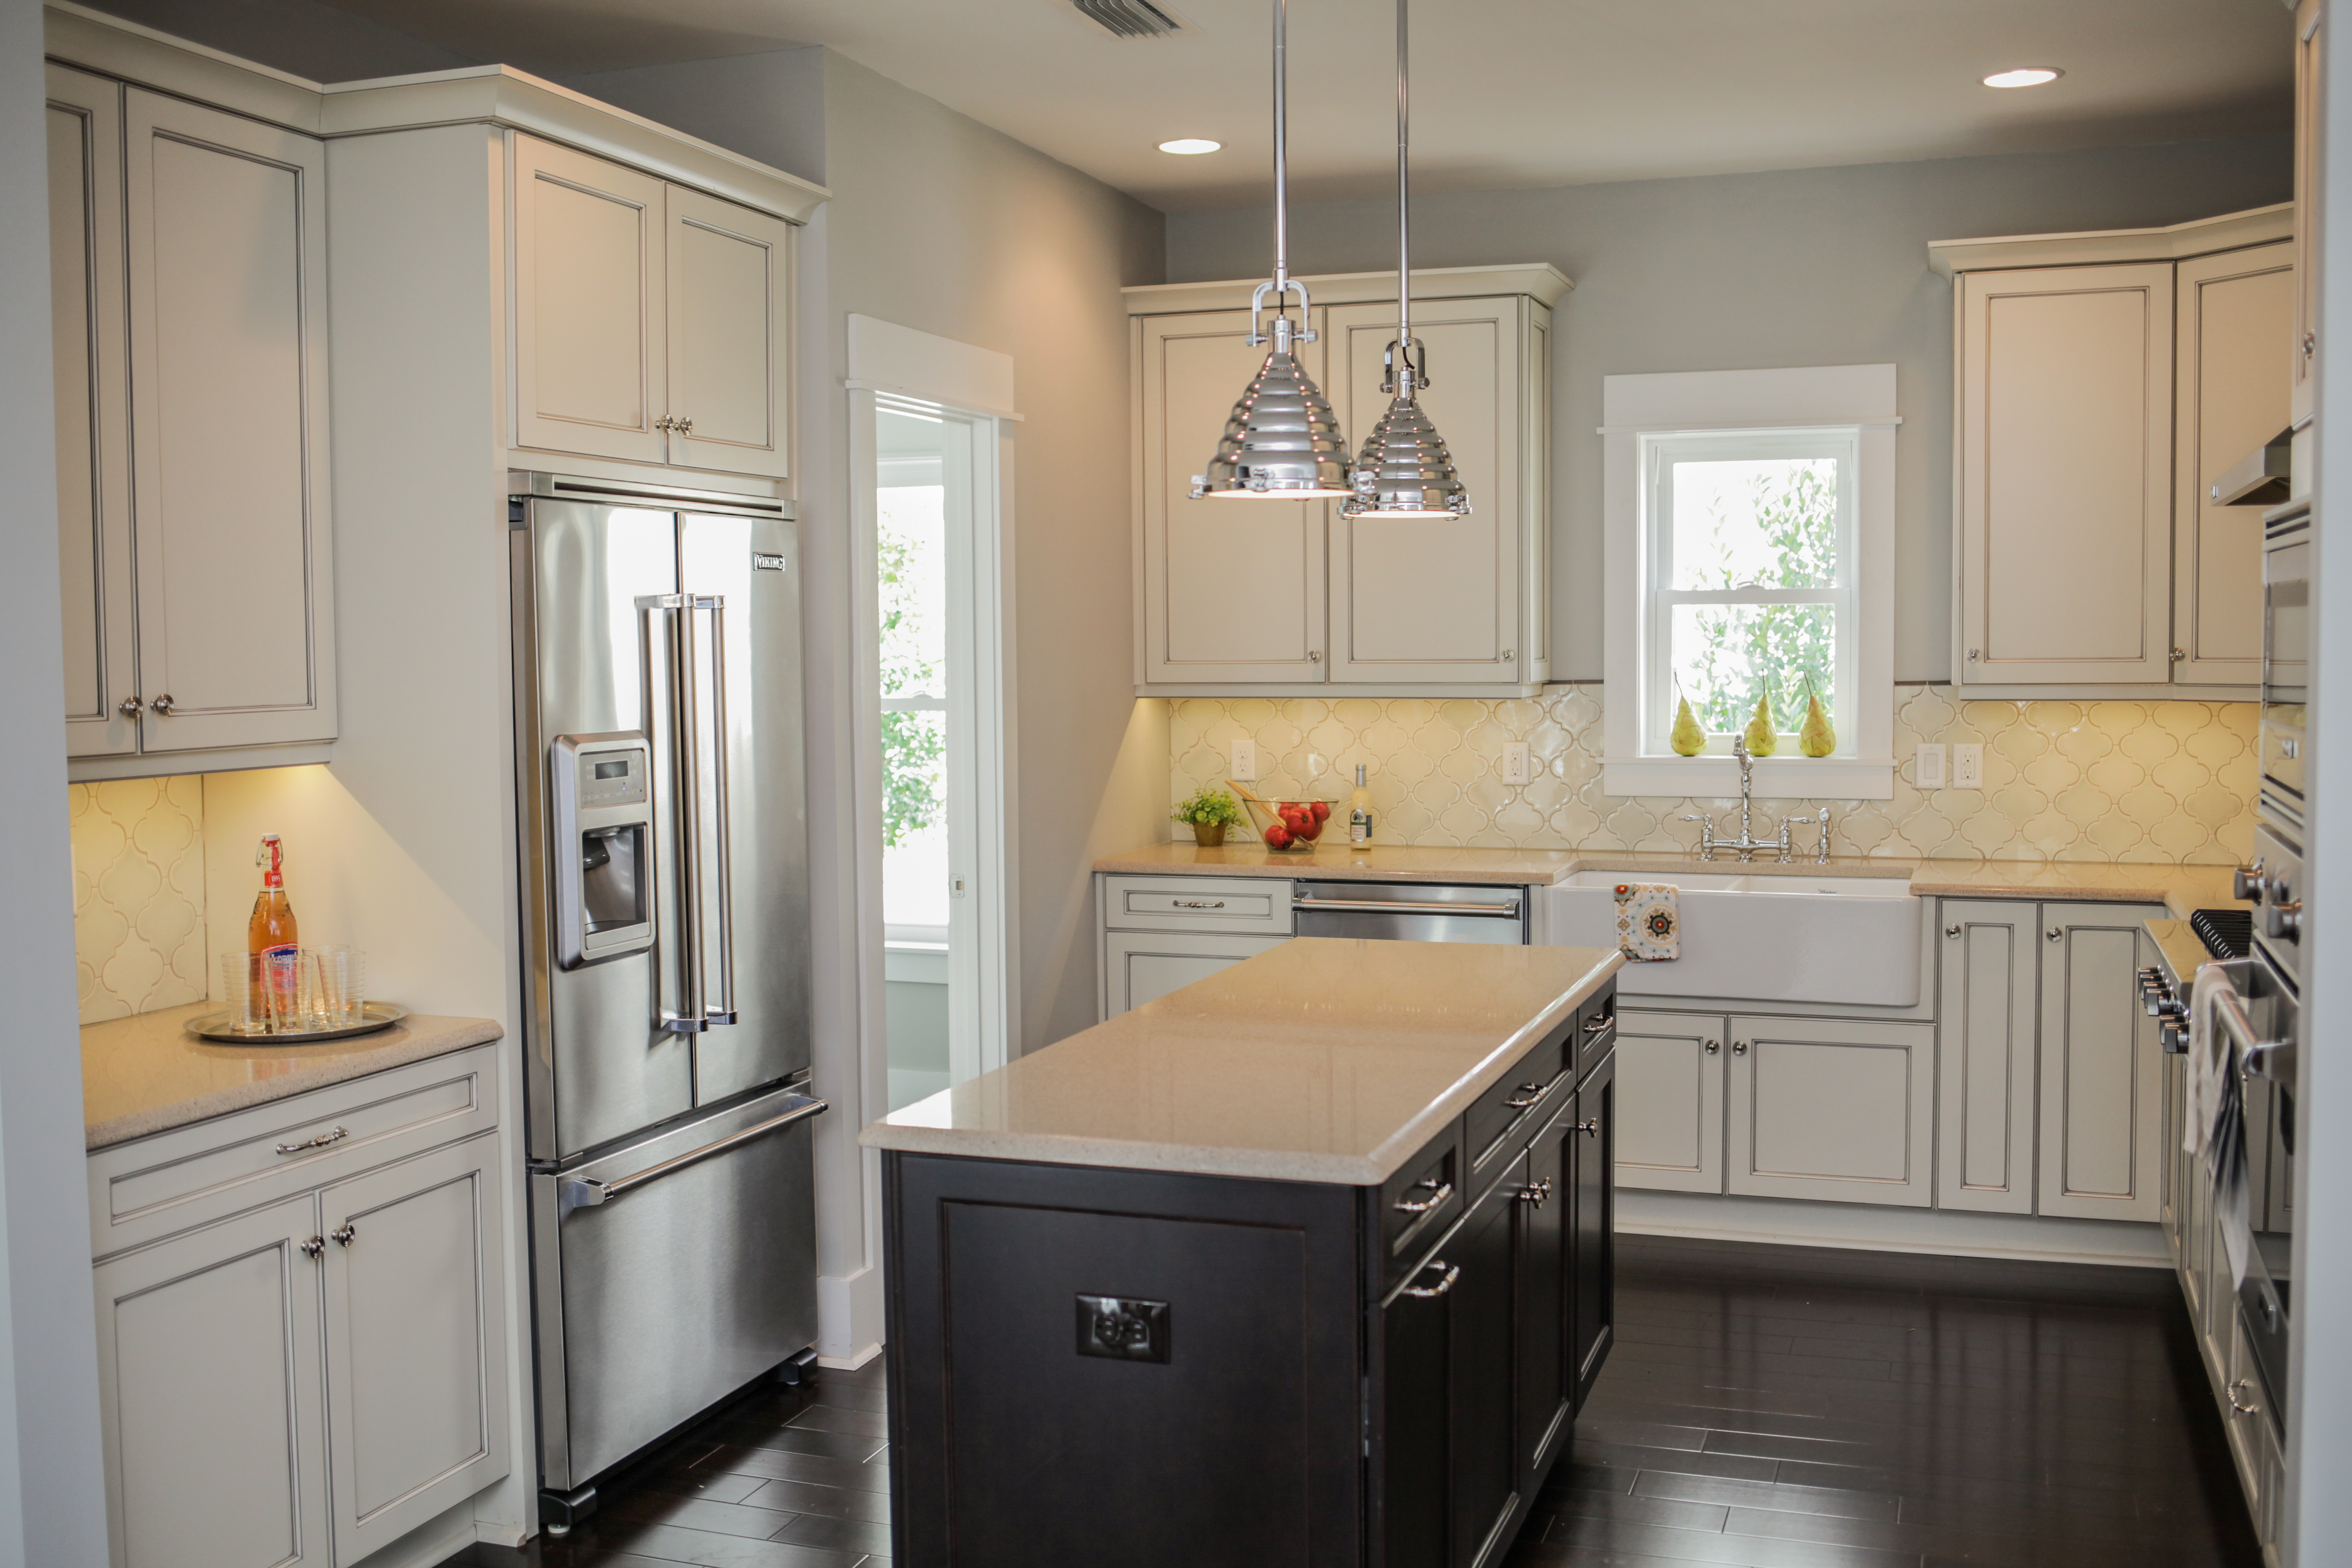 Choosing light fixtures for your home.